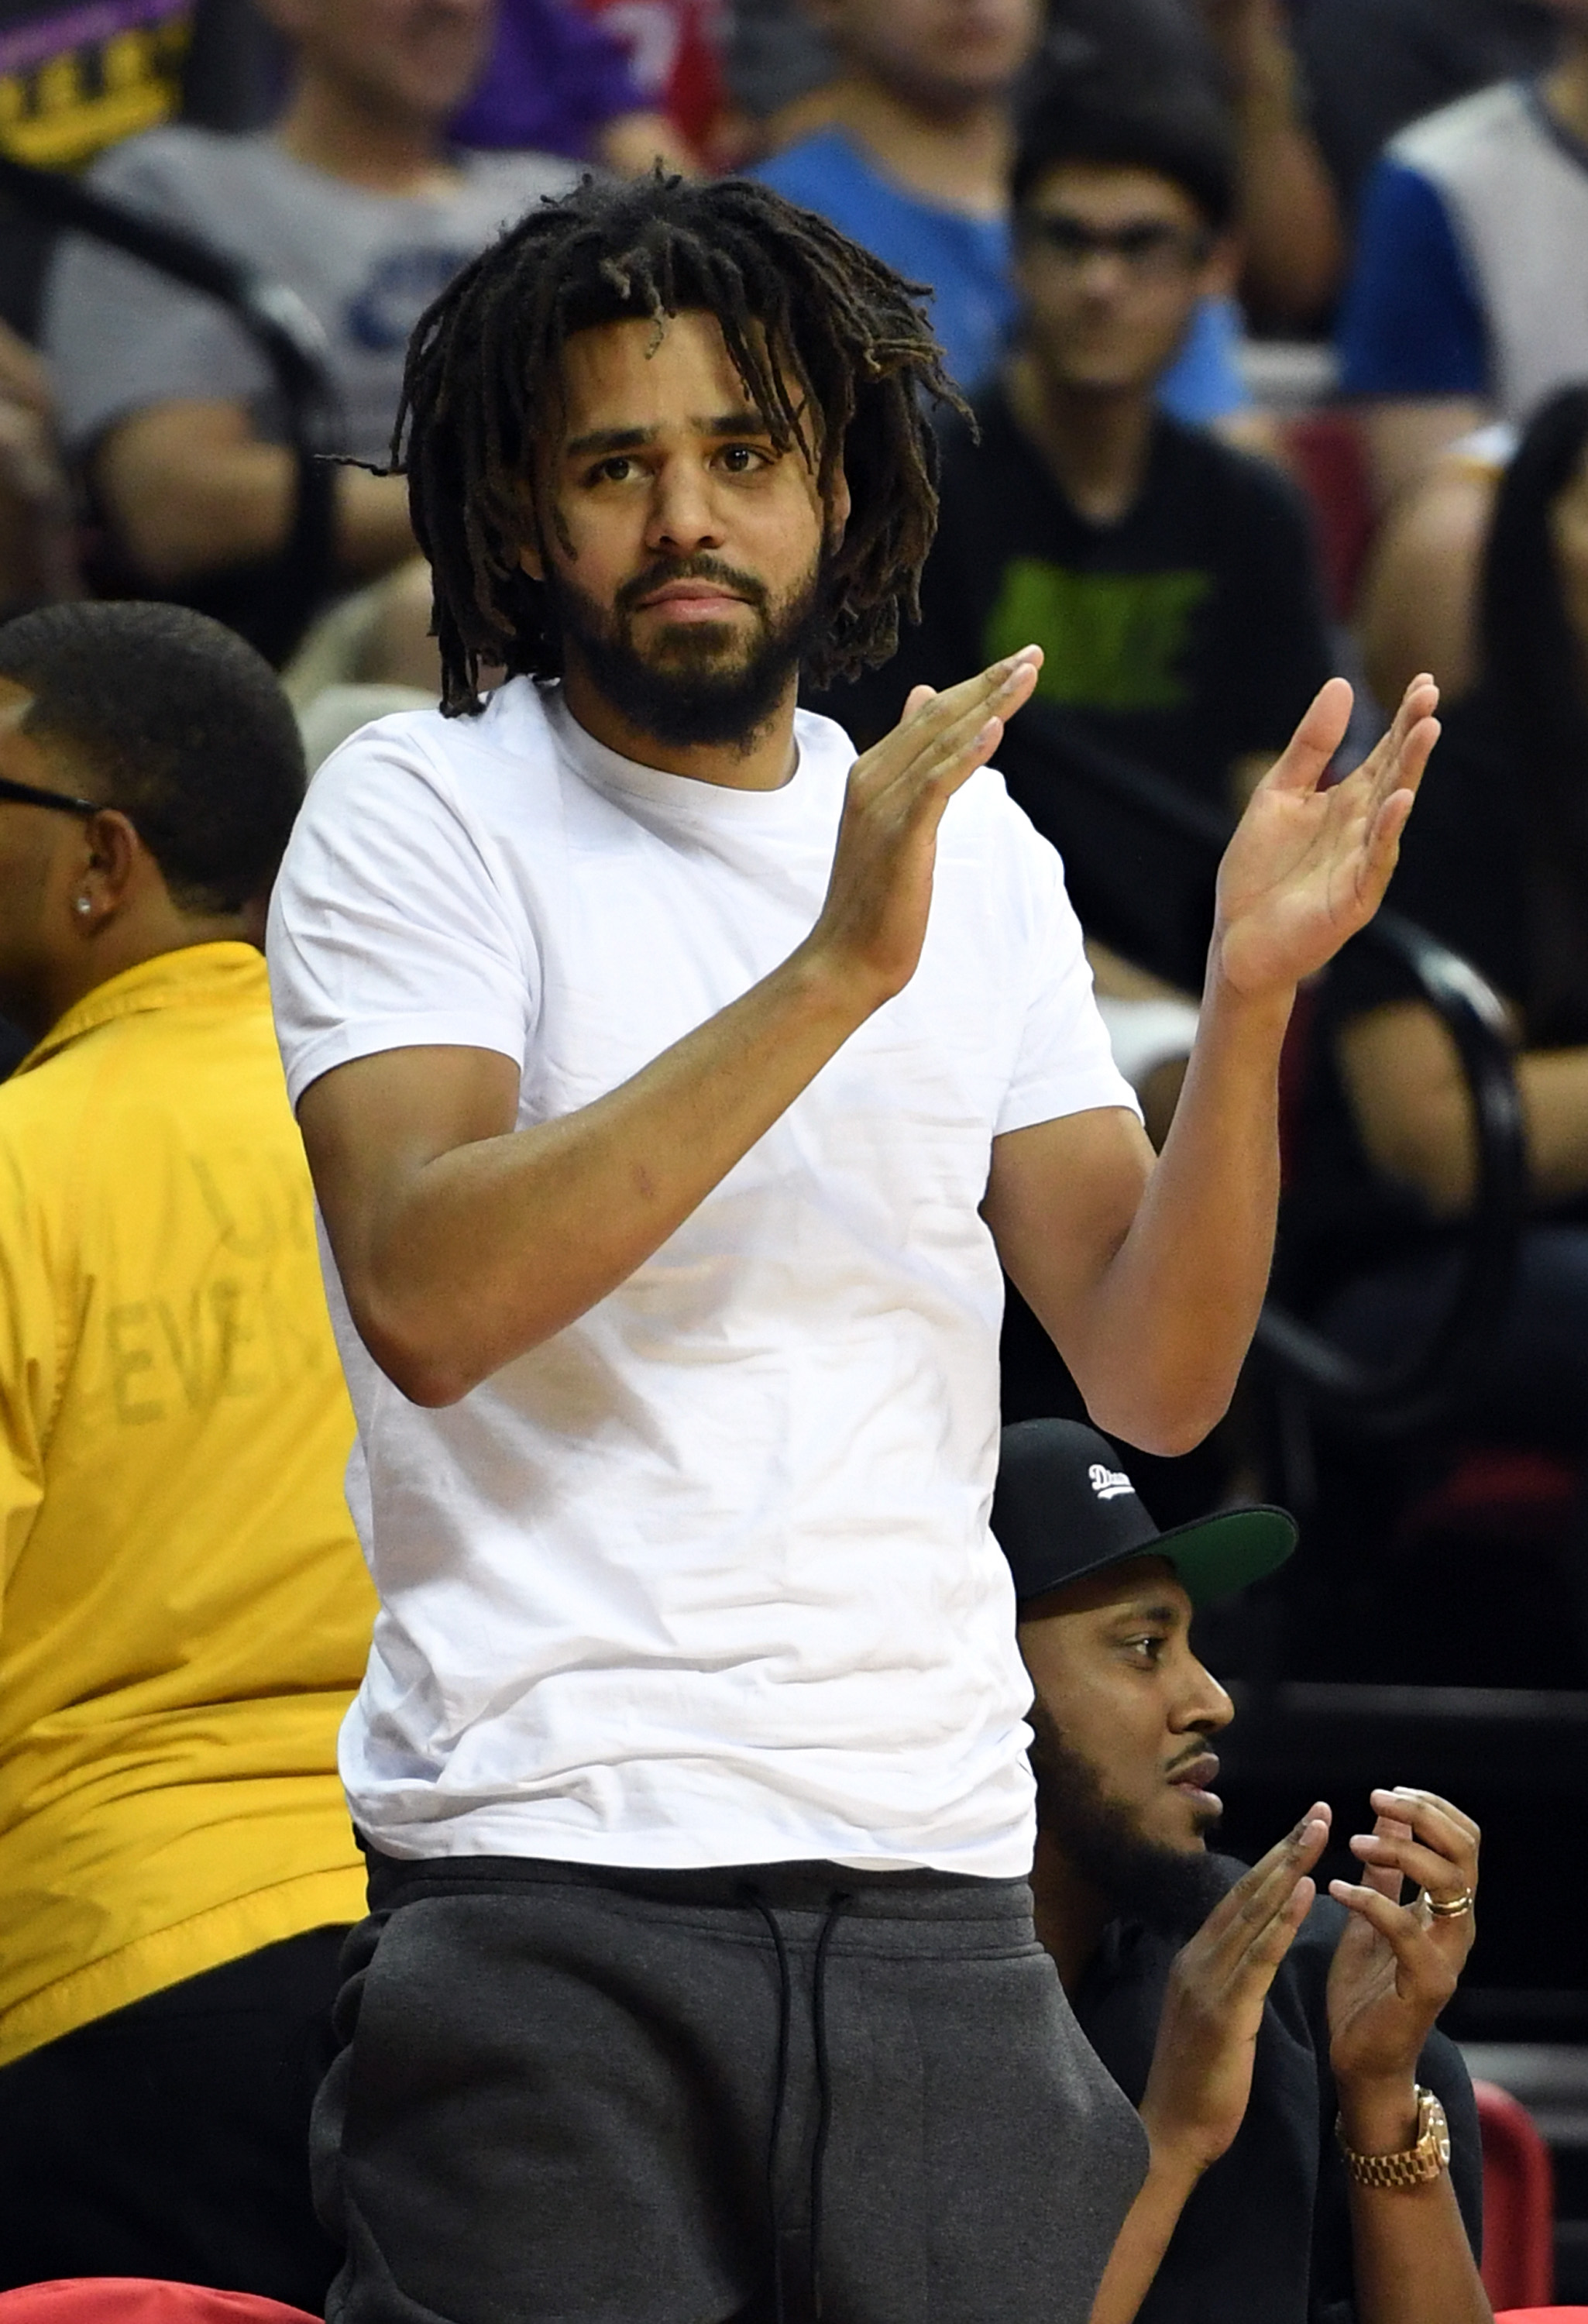 J. Cole Former Athlete